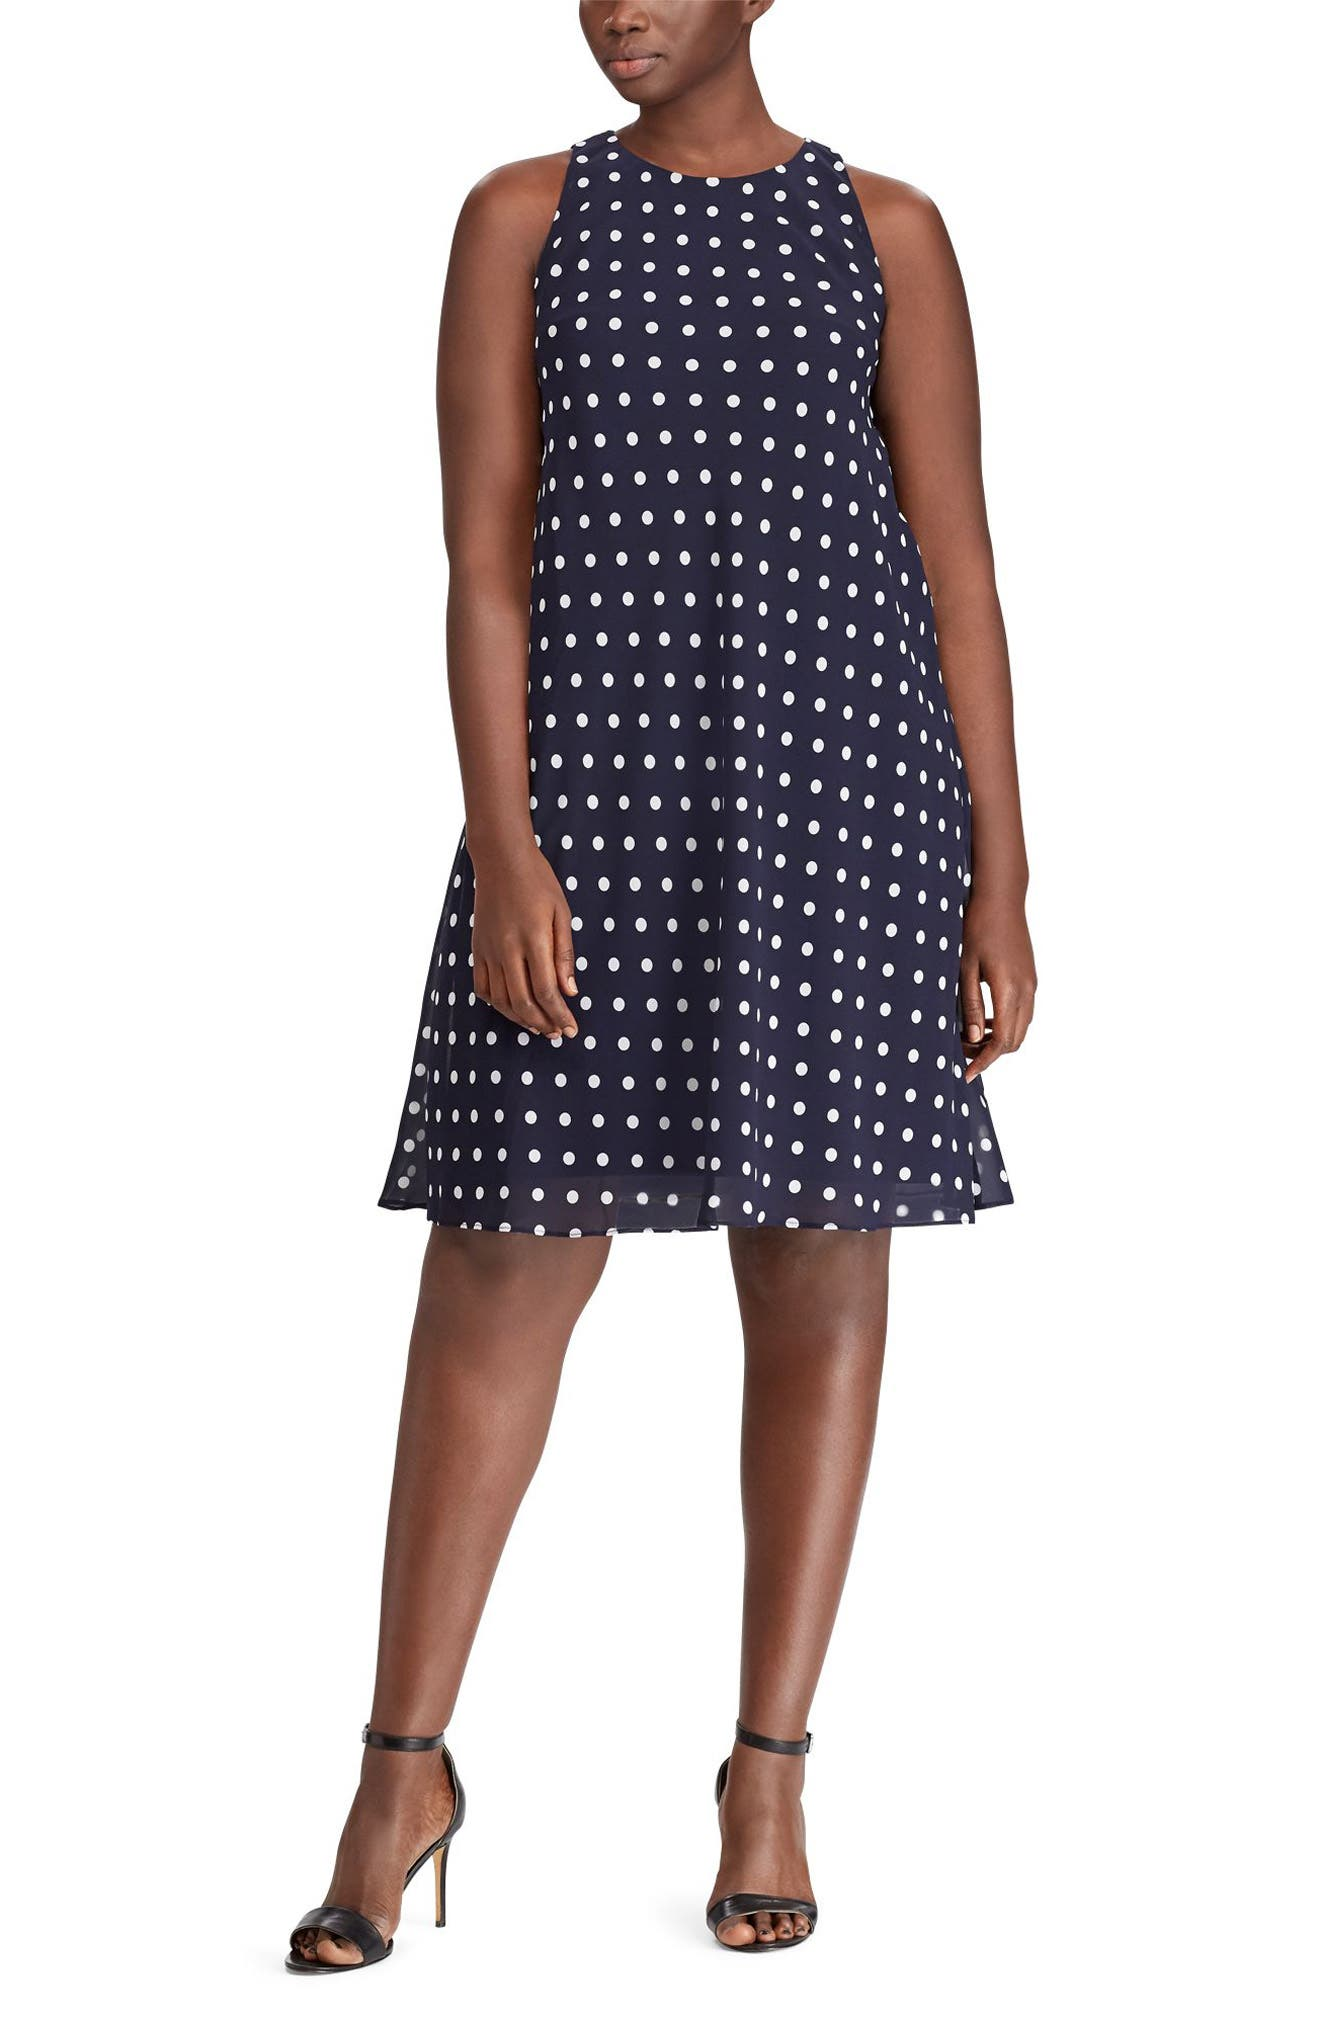 Alternate Image 1 Selected - Lauren Ralph Lauren Polka Dot Dress (Plus Size)